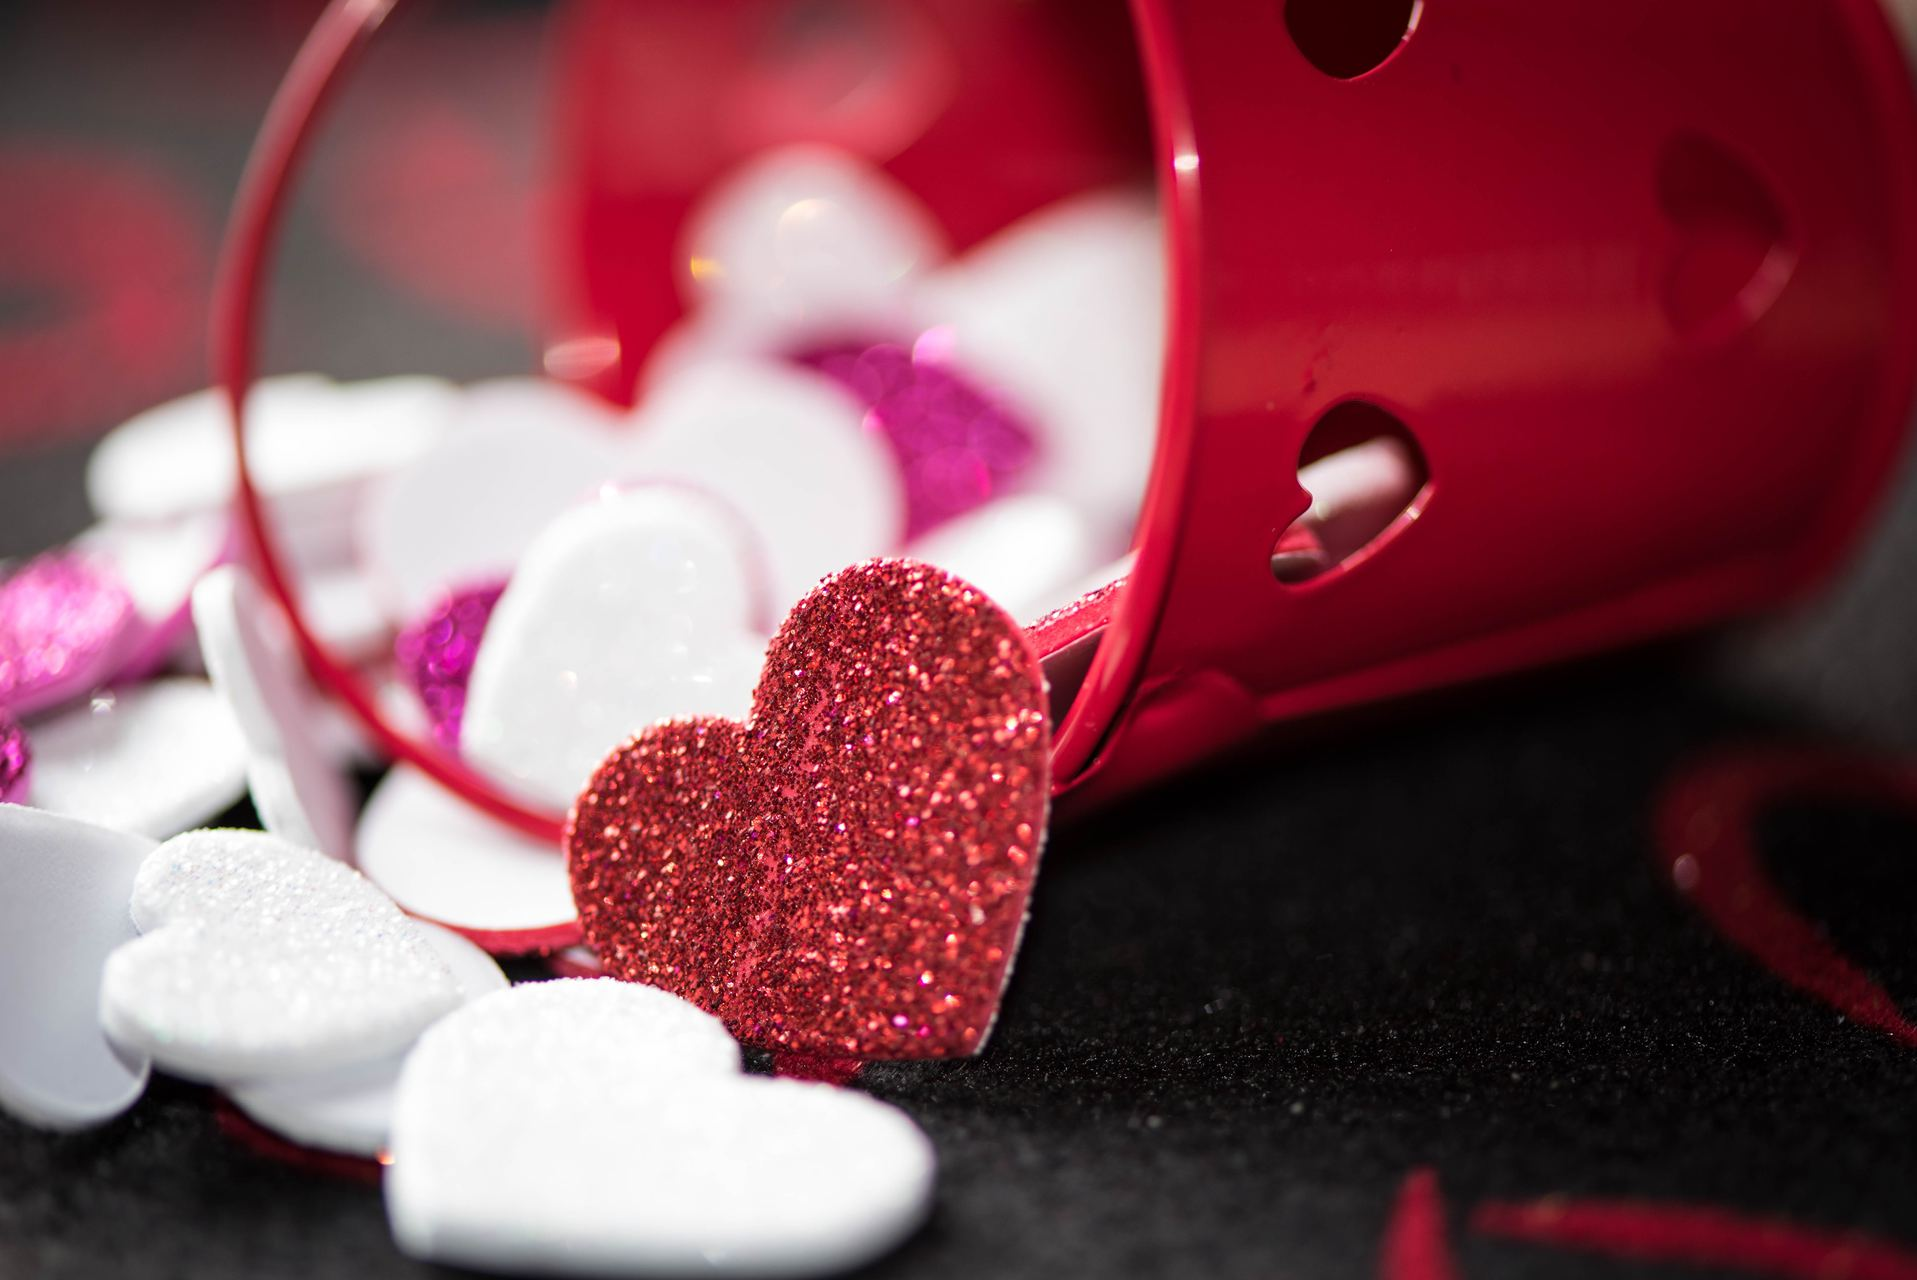 Proposing on Valentine's Day? Read this!